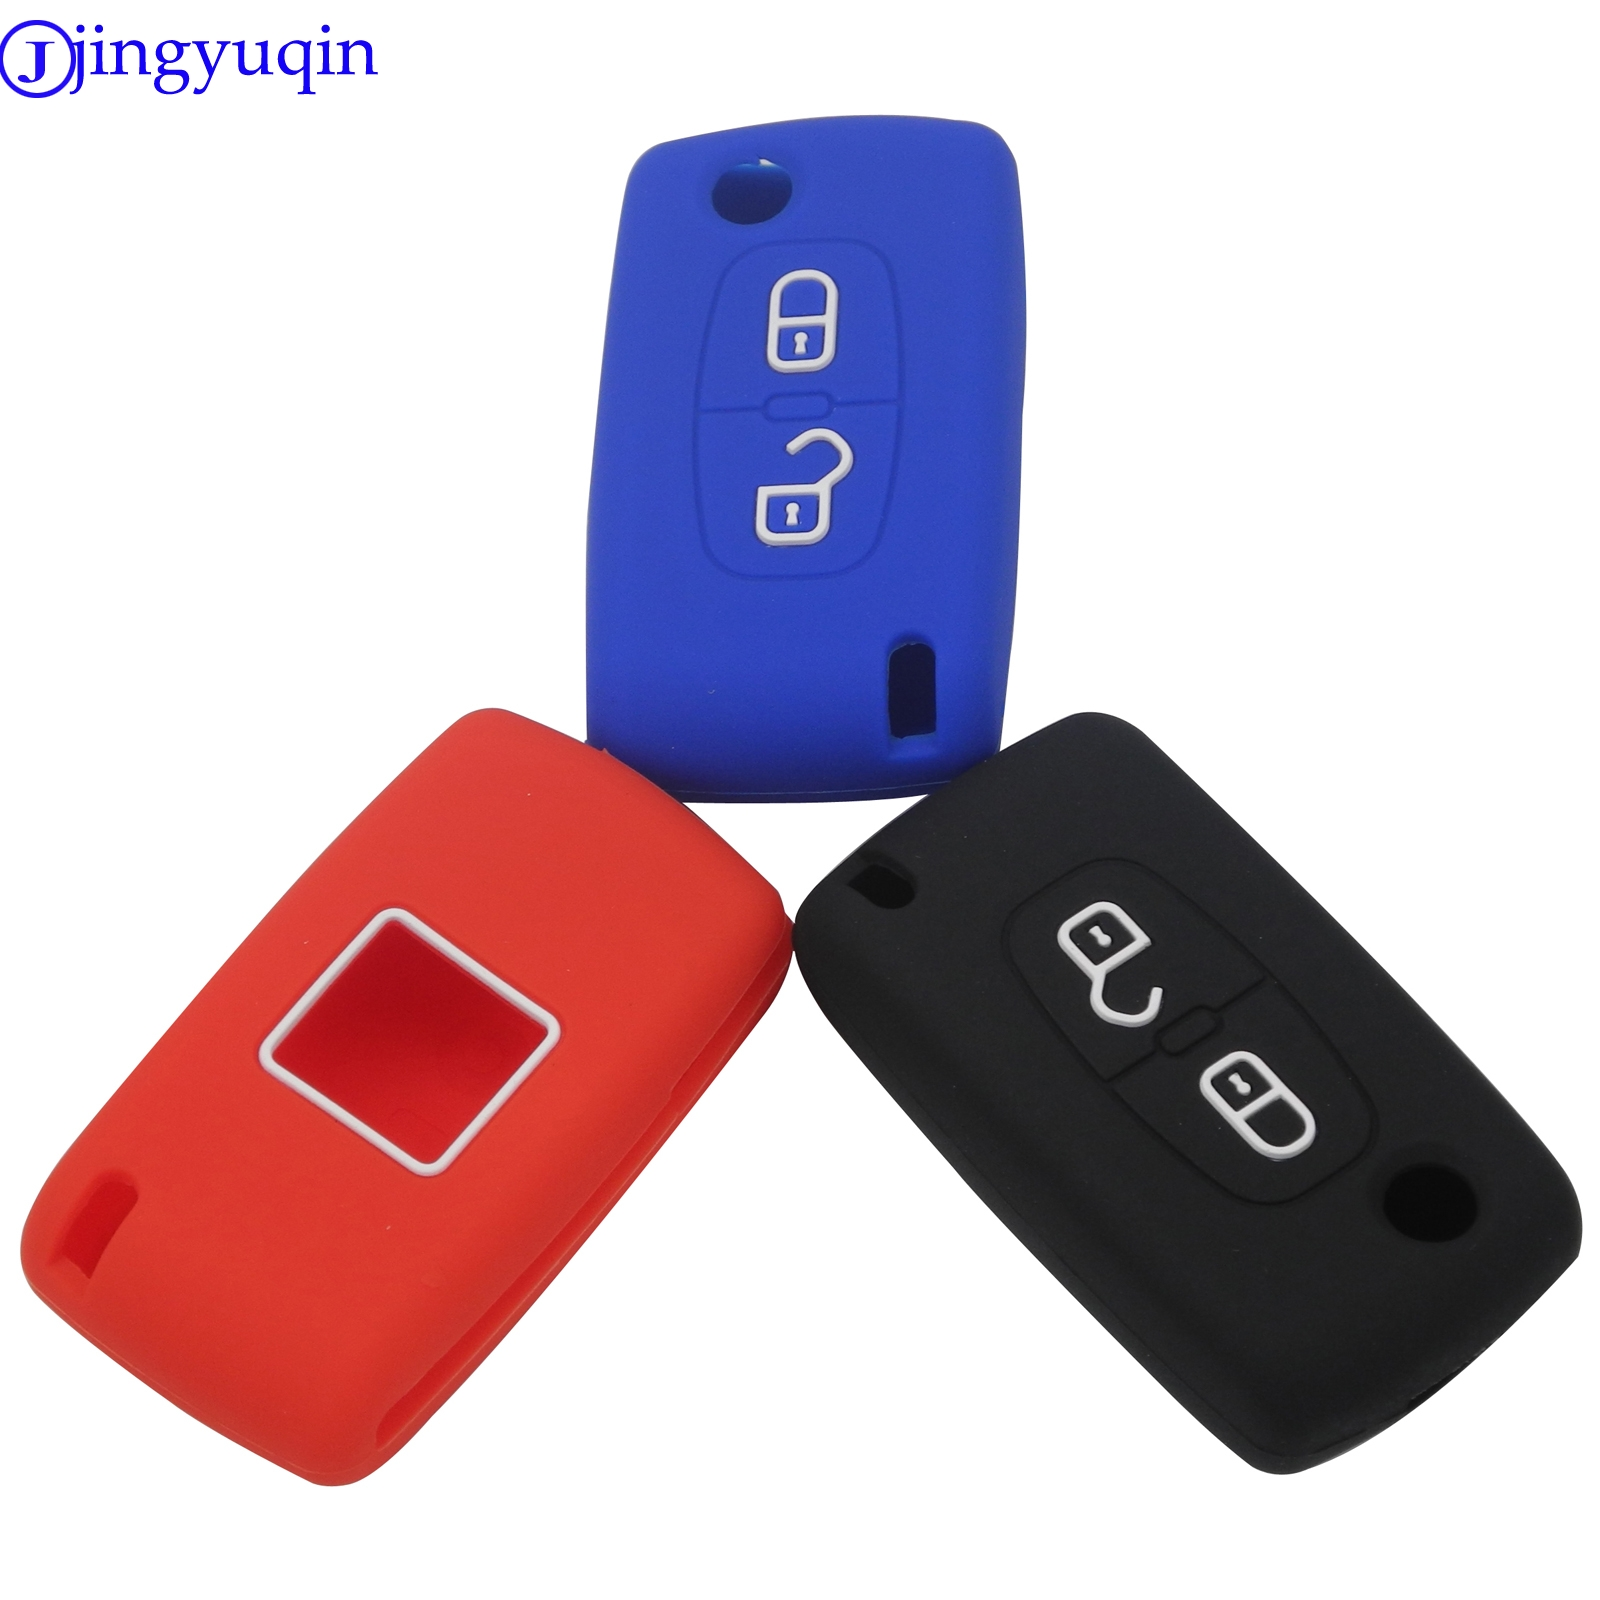 Flip Fob Folding Remote Silicon Key Case For Peugeot 306 407 807 Partner Citroen C2 C3 C4 C6 Berlingo Remote Fob Case 2 Button